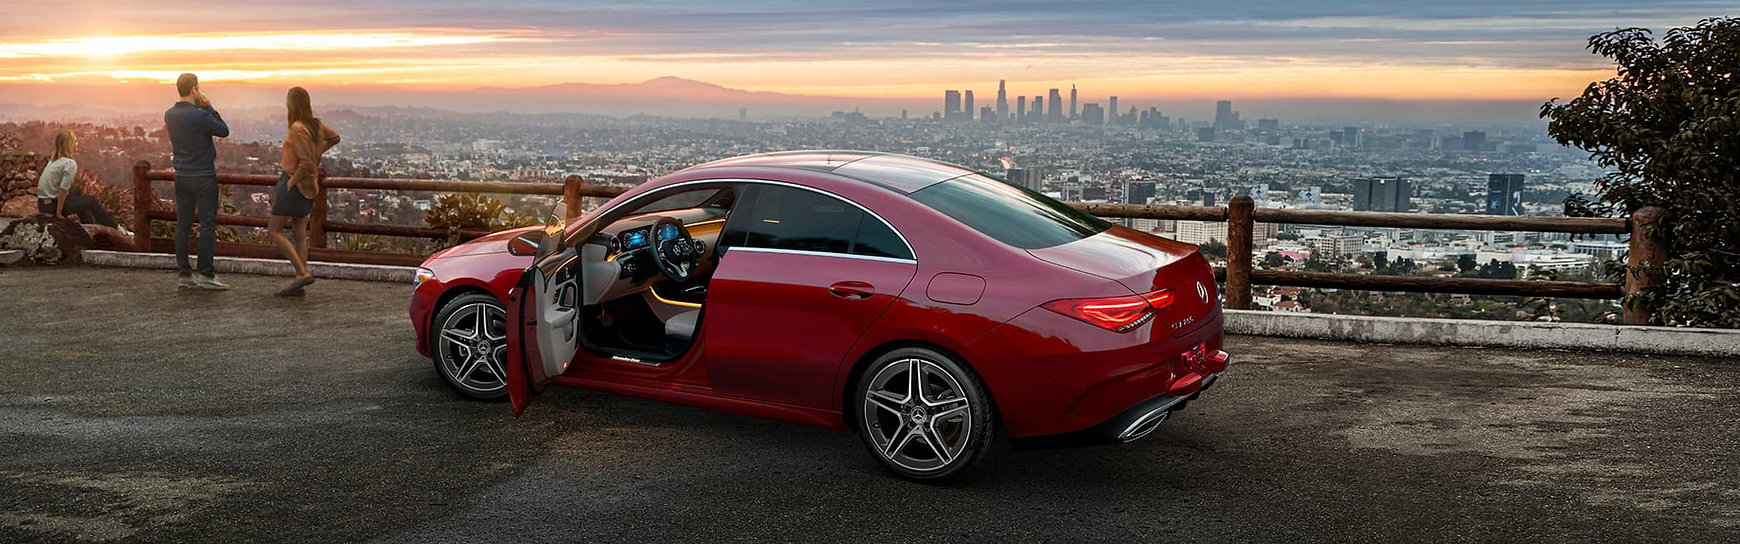 2020-CLA-COUPE-CH-1-1-DR.jpg